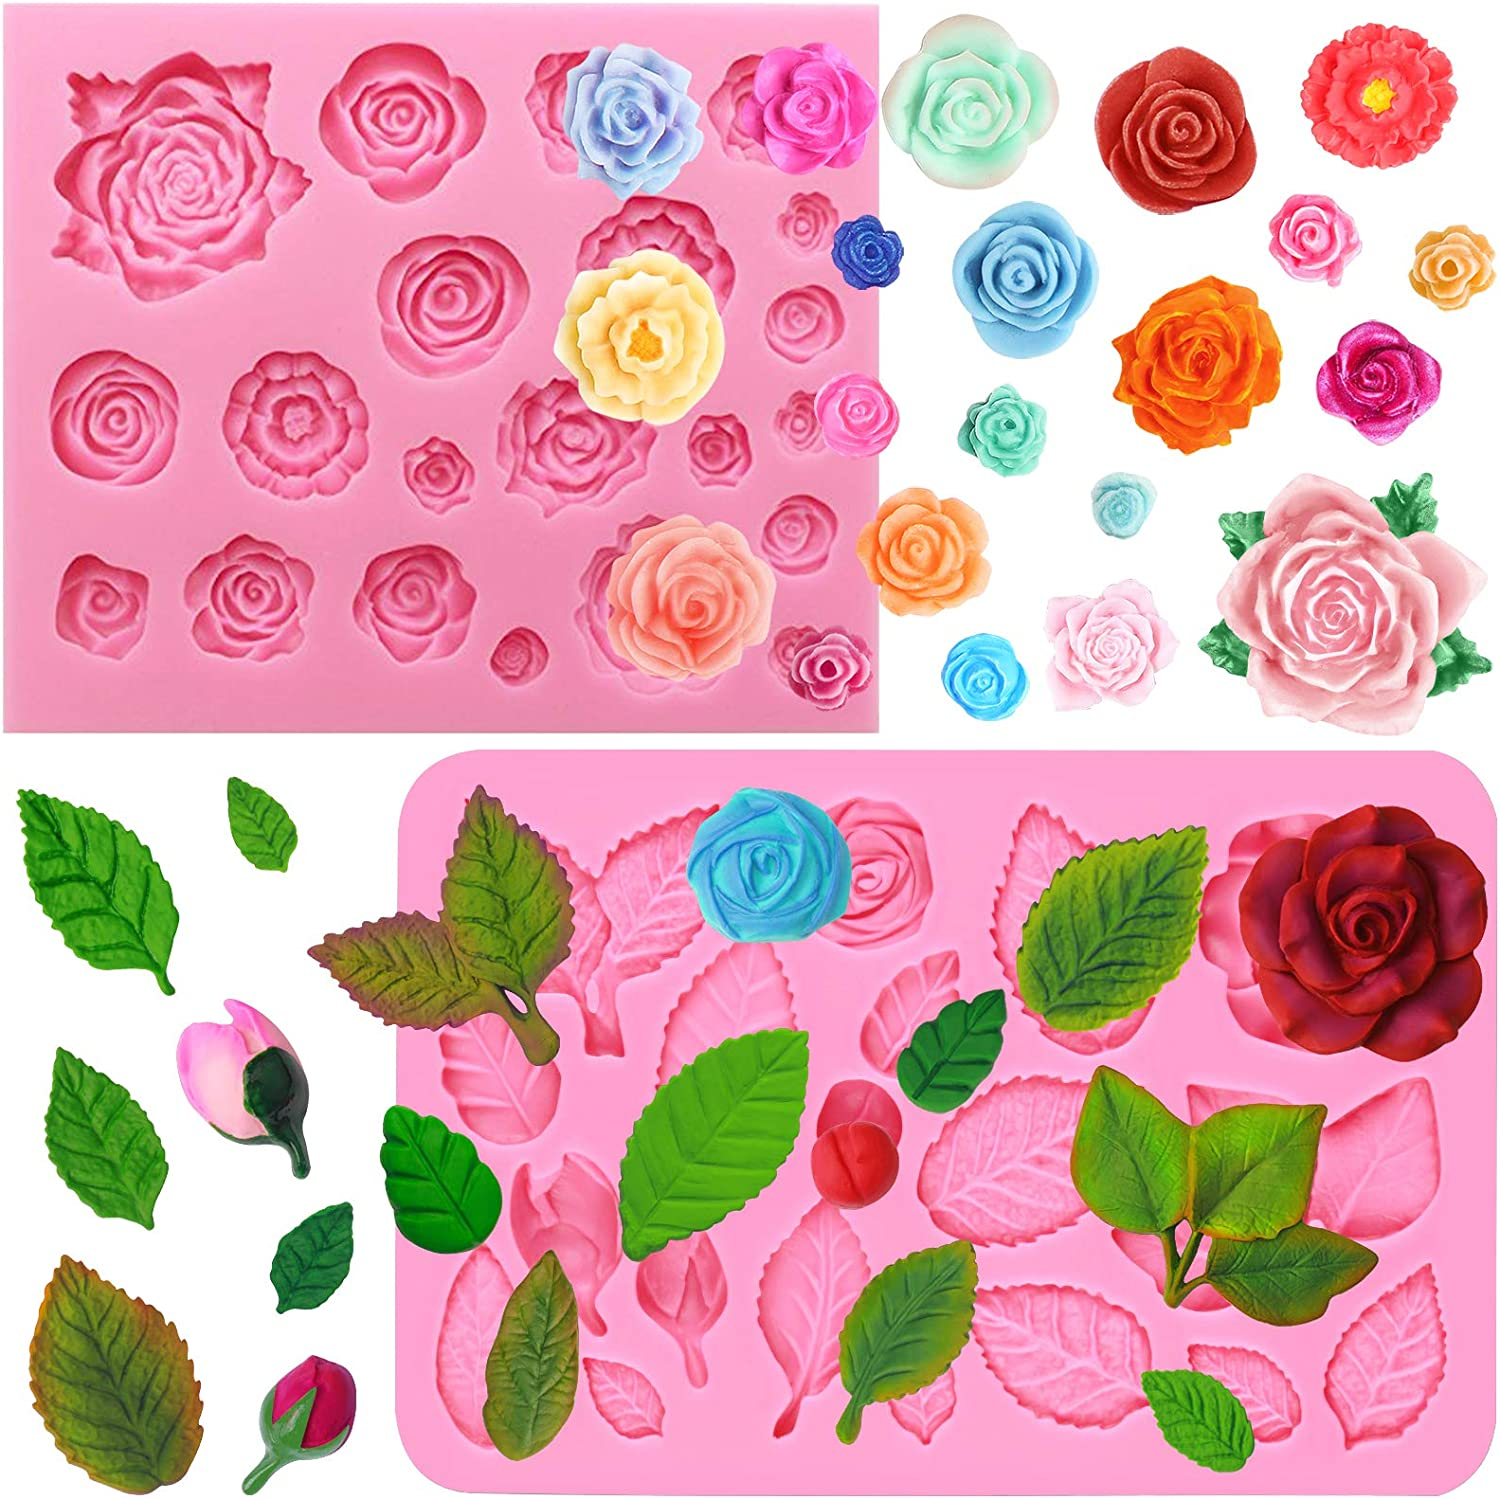 FUNSHOWCASE Rose and Leaf Collection Silicone Fondant Molds Set 2-Count